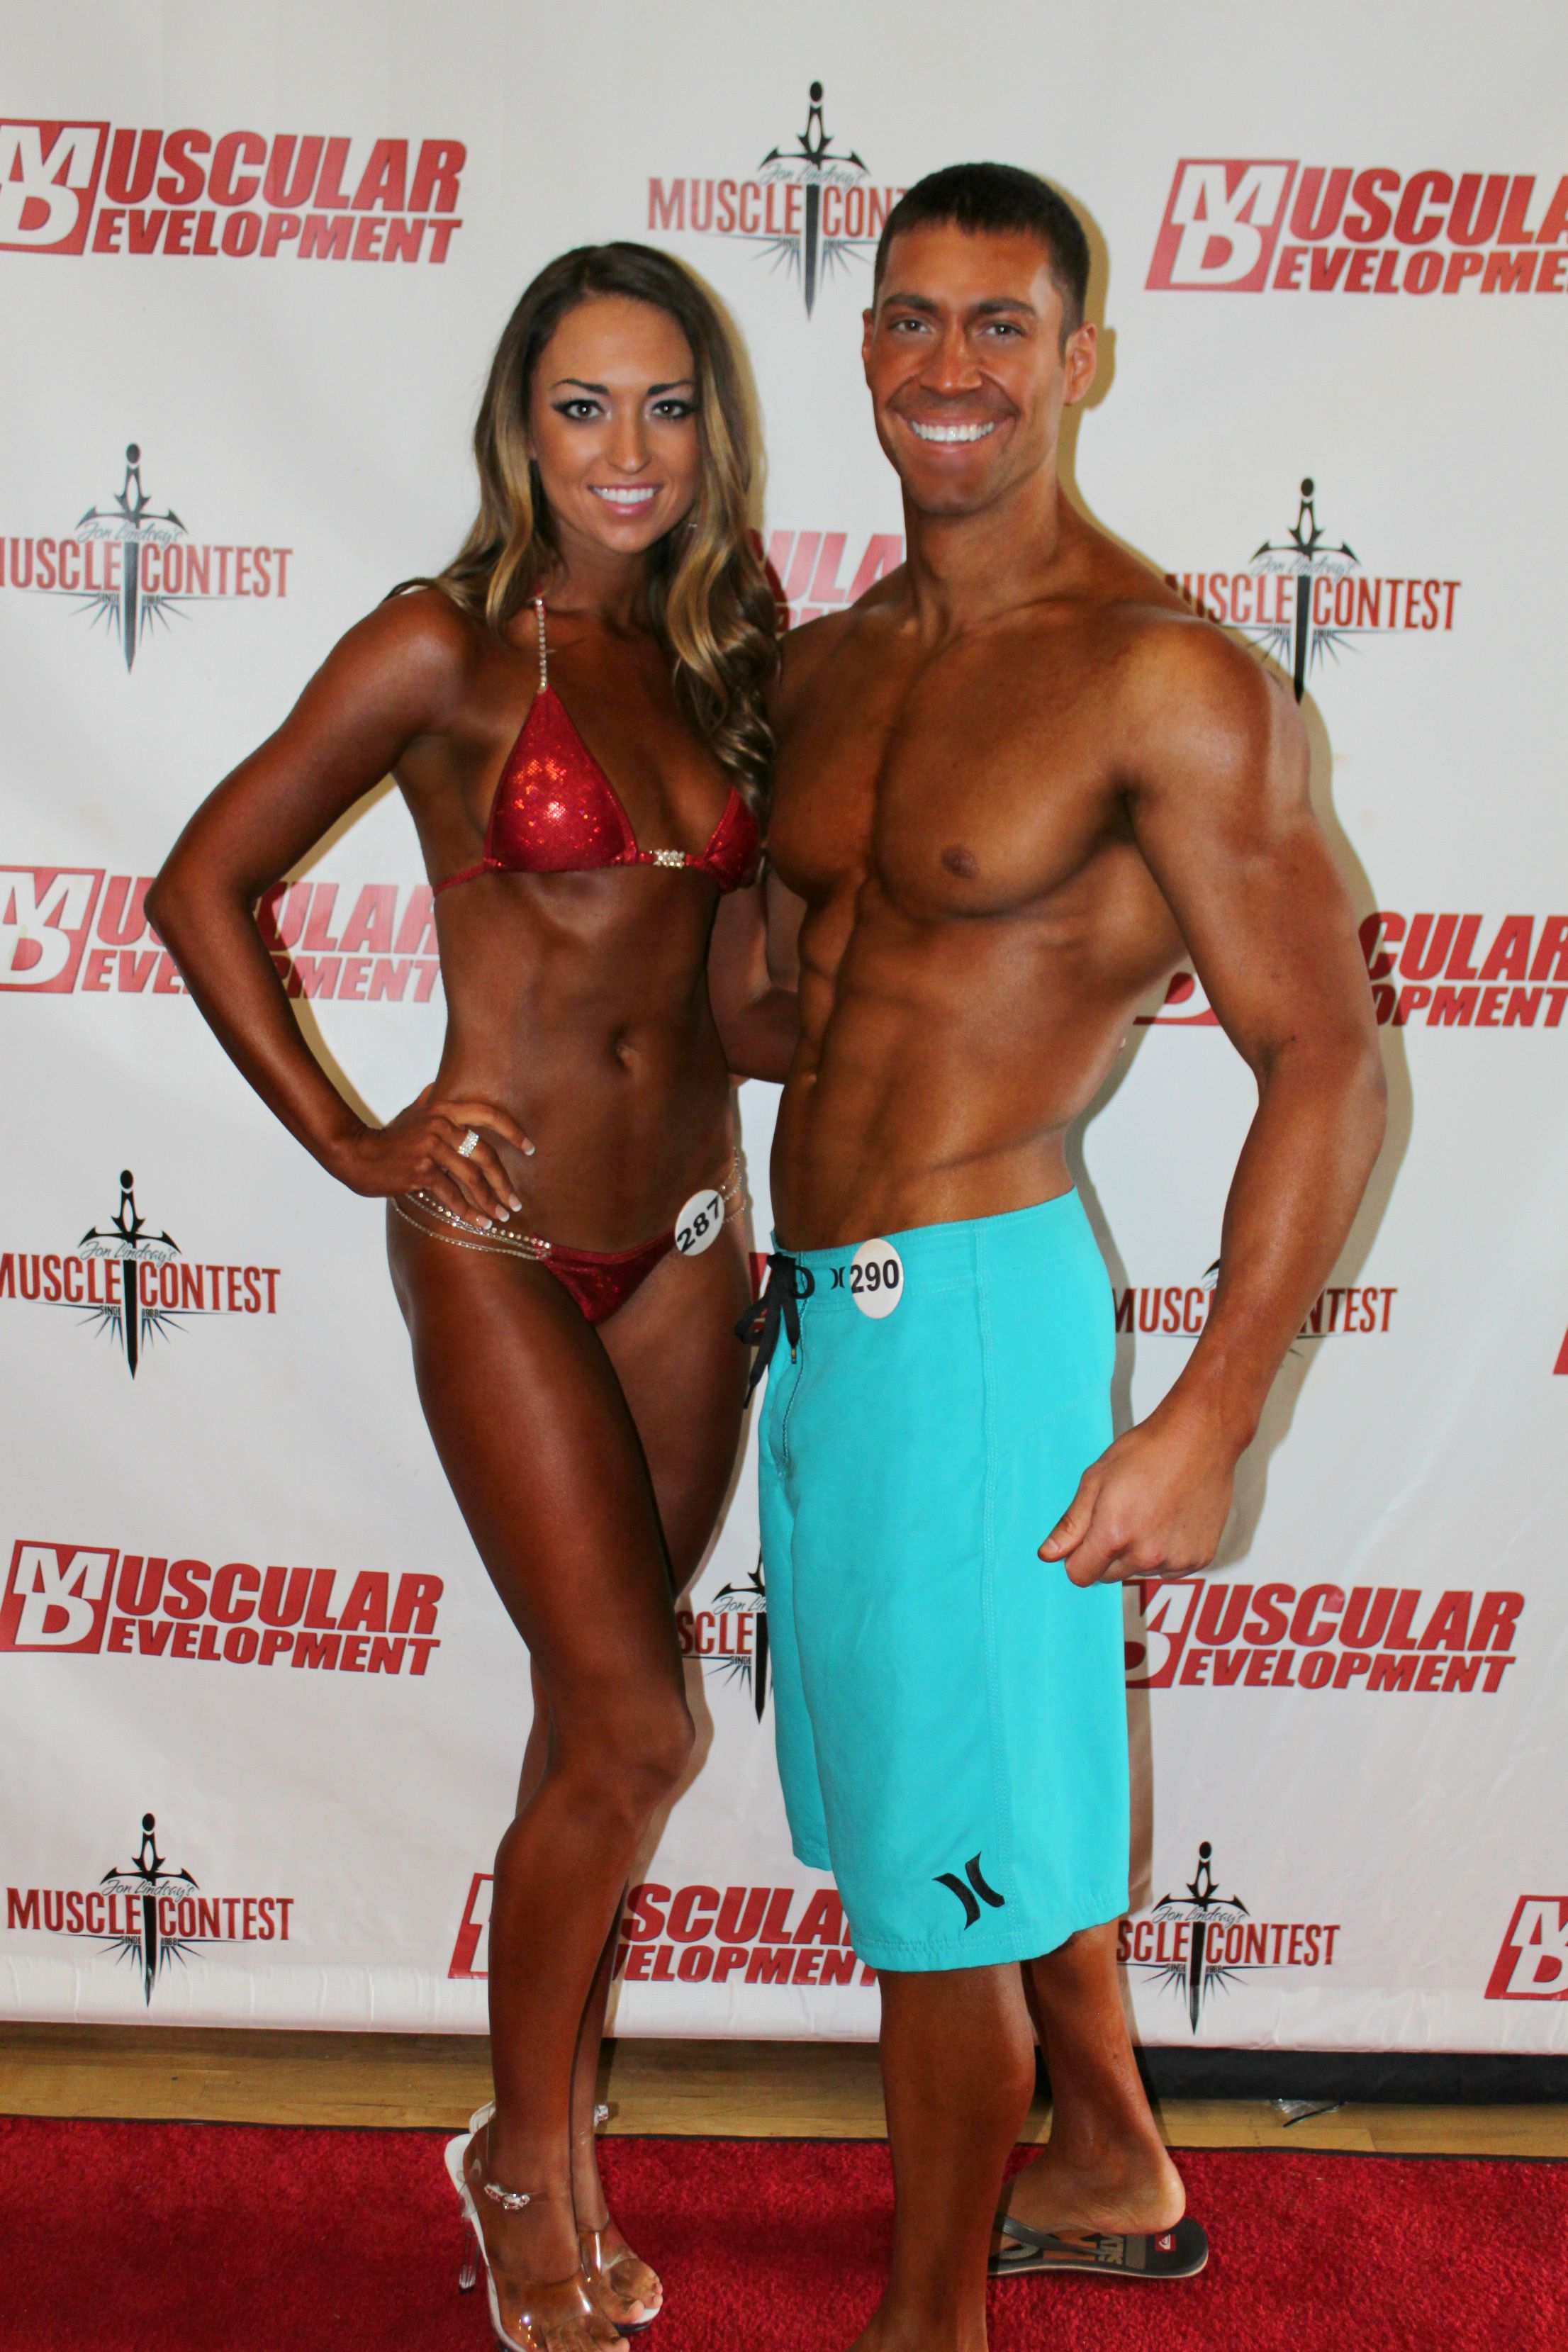 First Competition Competitor GuideProtein Bikini Time CQrhsdt